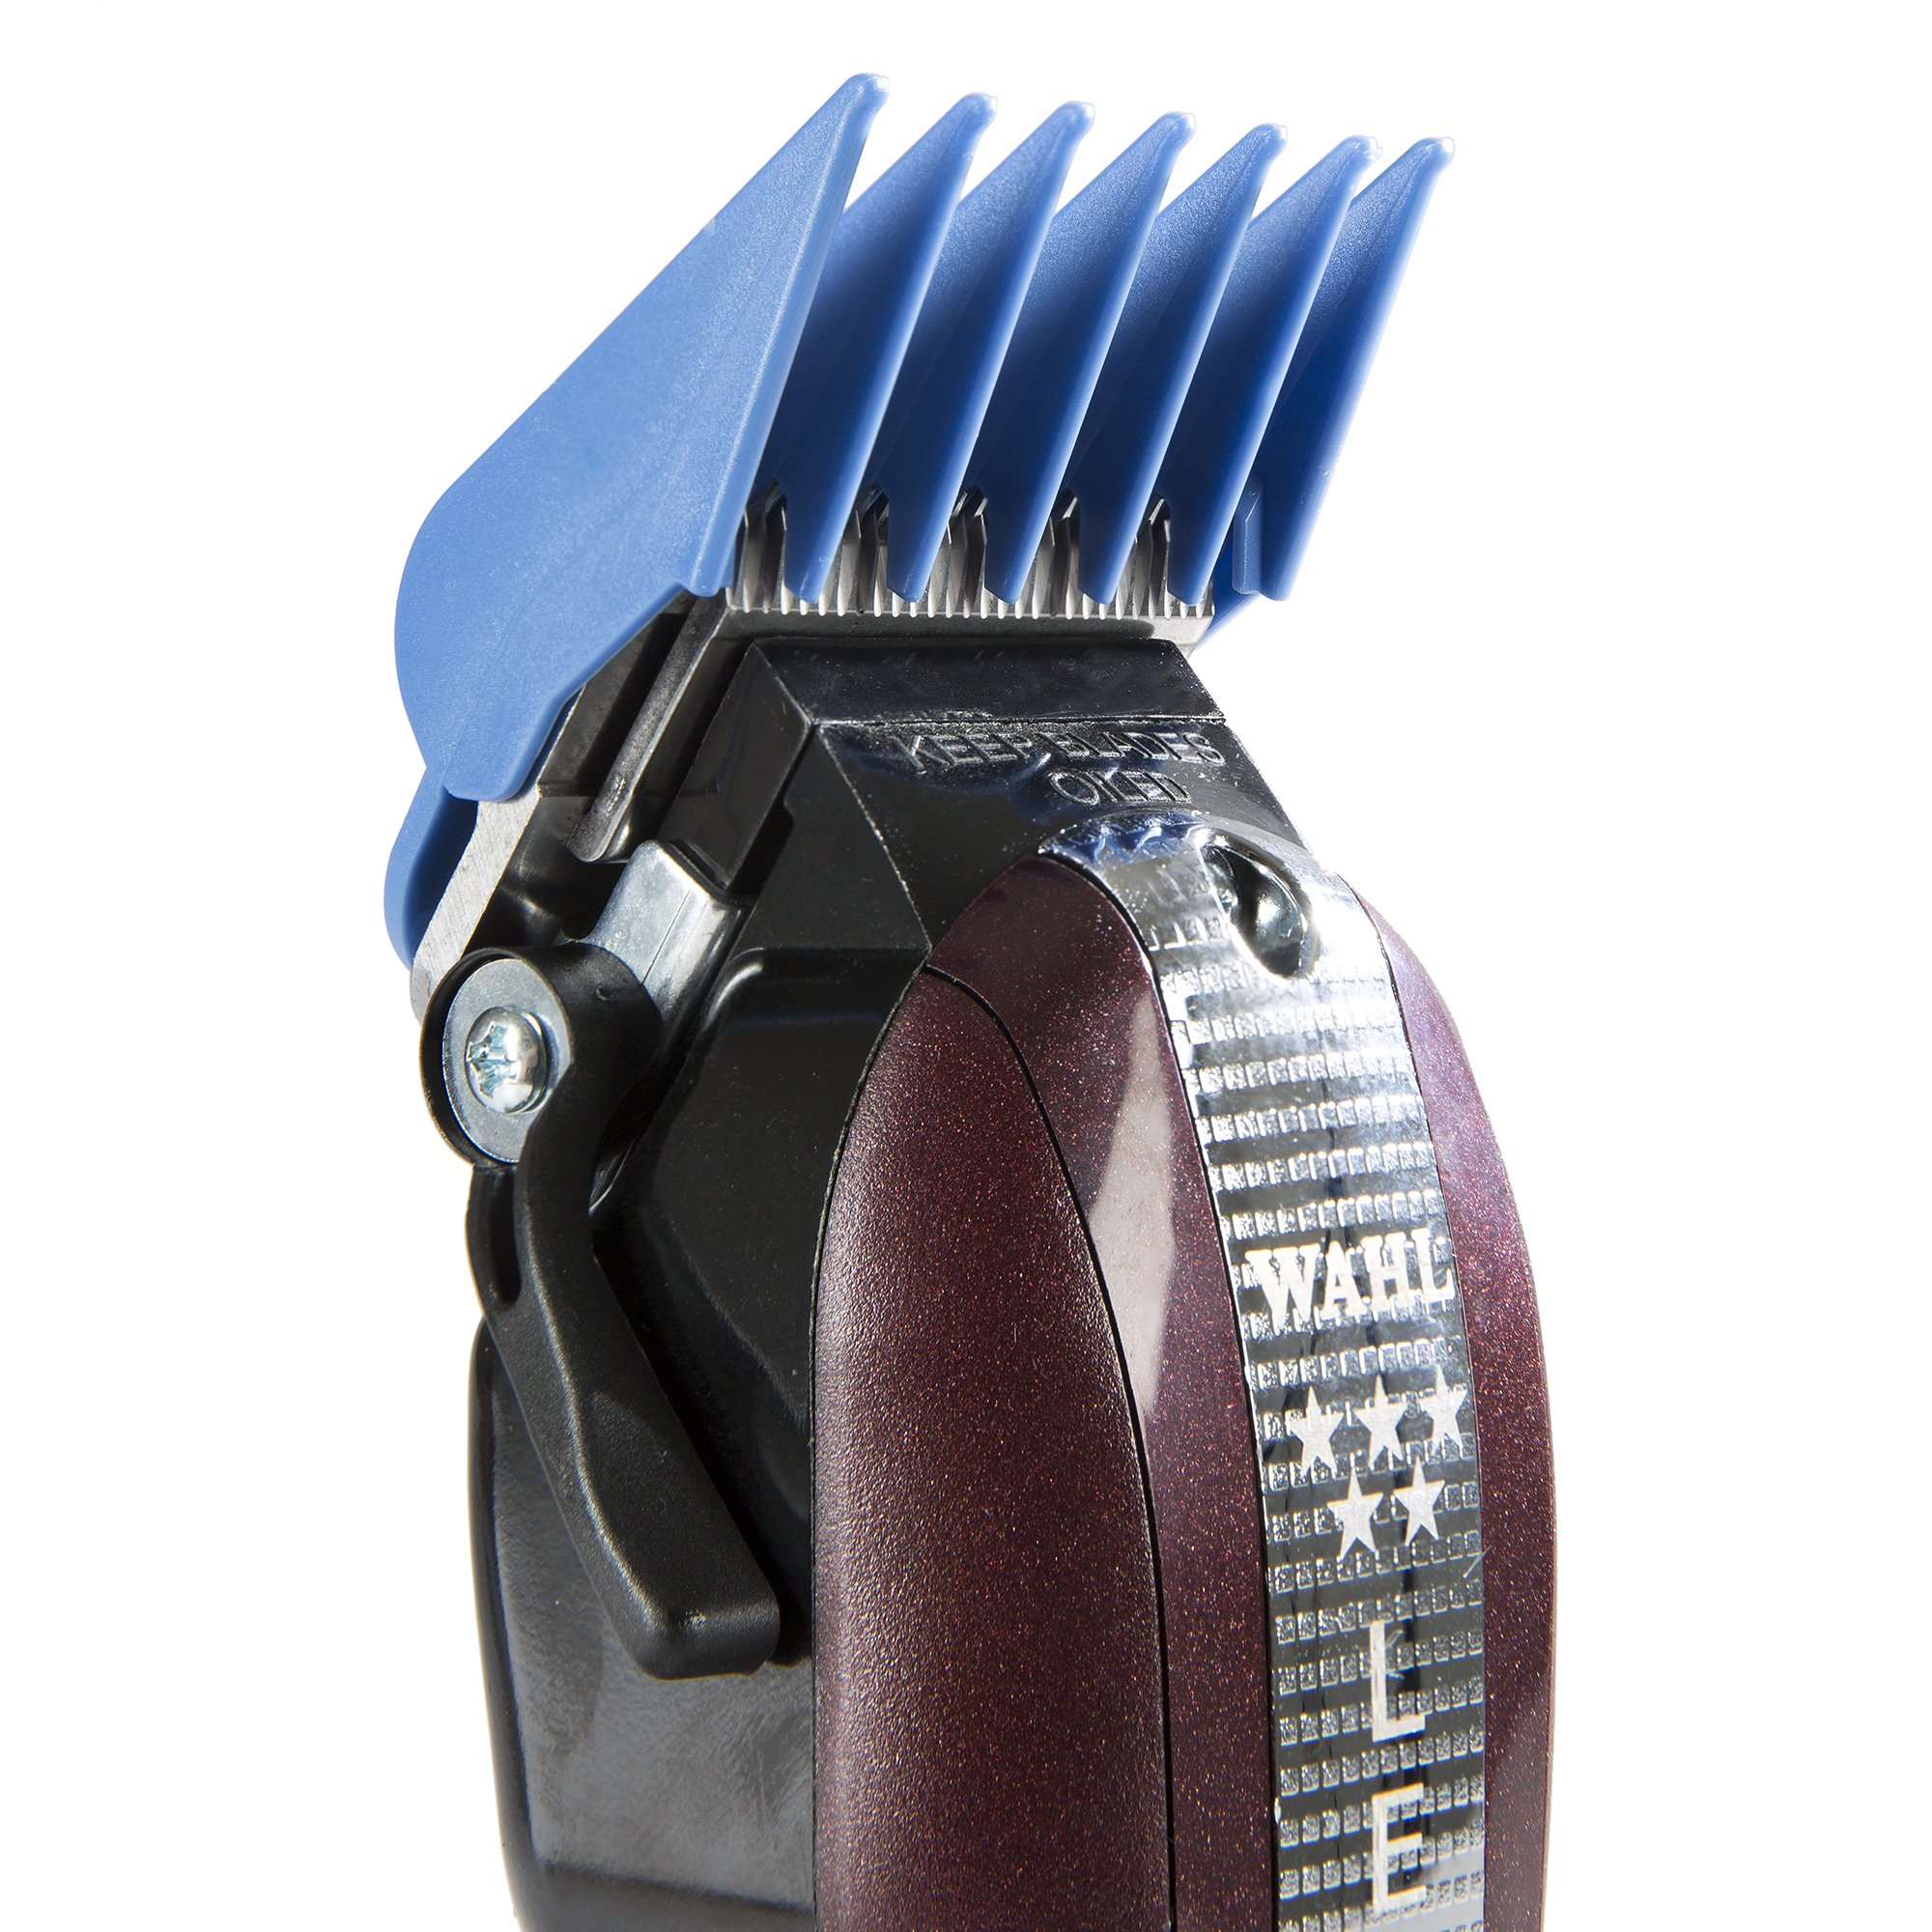 """Wahl Professional 8 Color Coded Cutting Guides with Organizer #3170-400 – Great for Professional Stylists and Barbers – Cutting Lengths from 1/8"""" to 1 by Wahl Professional (Image #7)"""